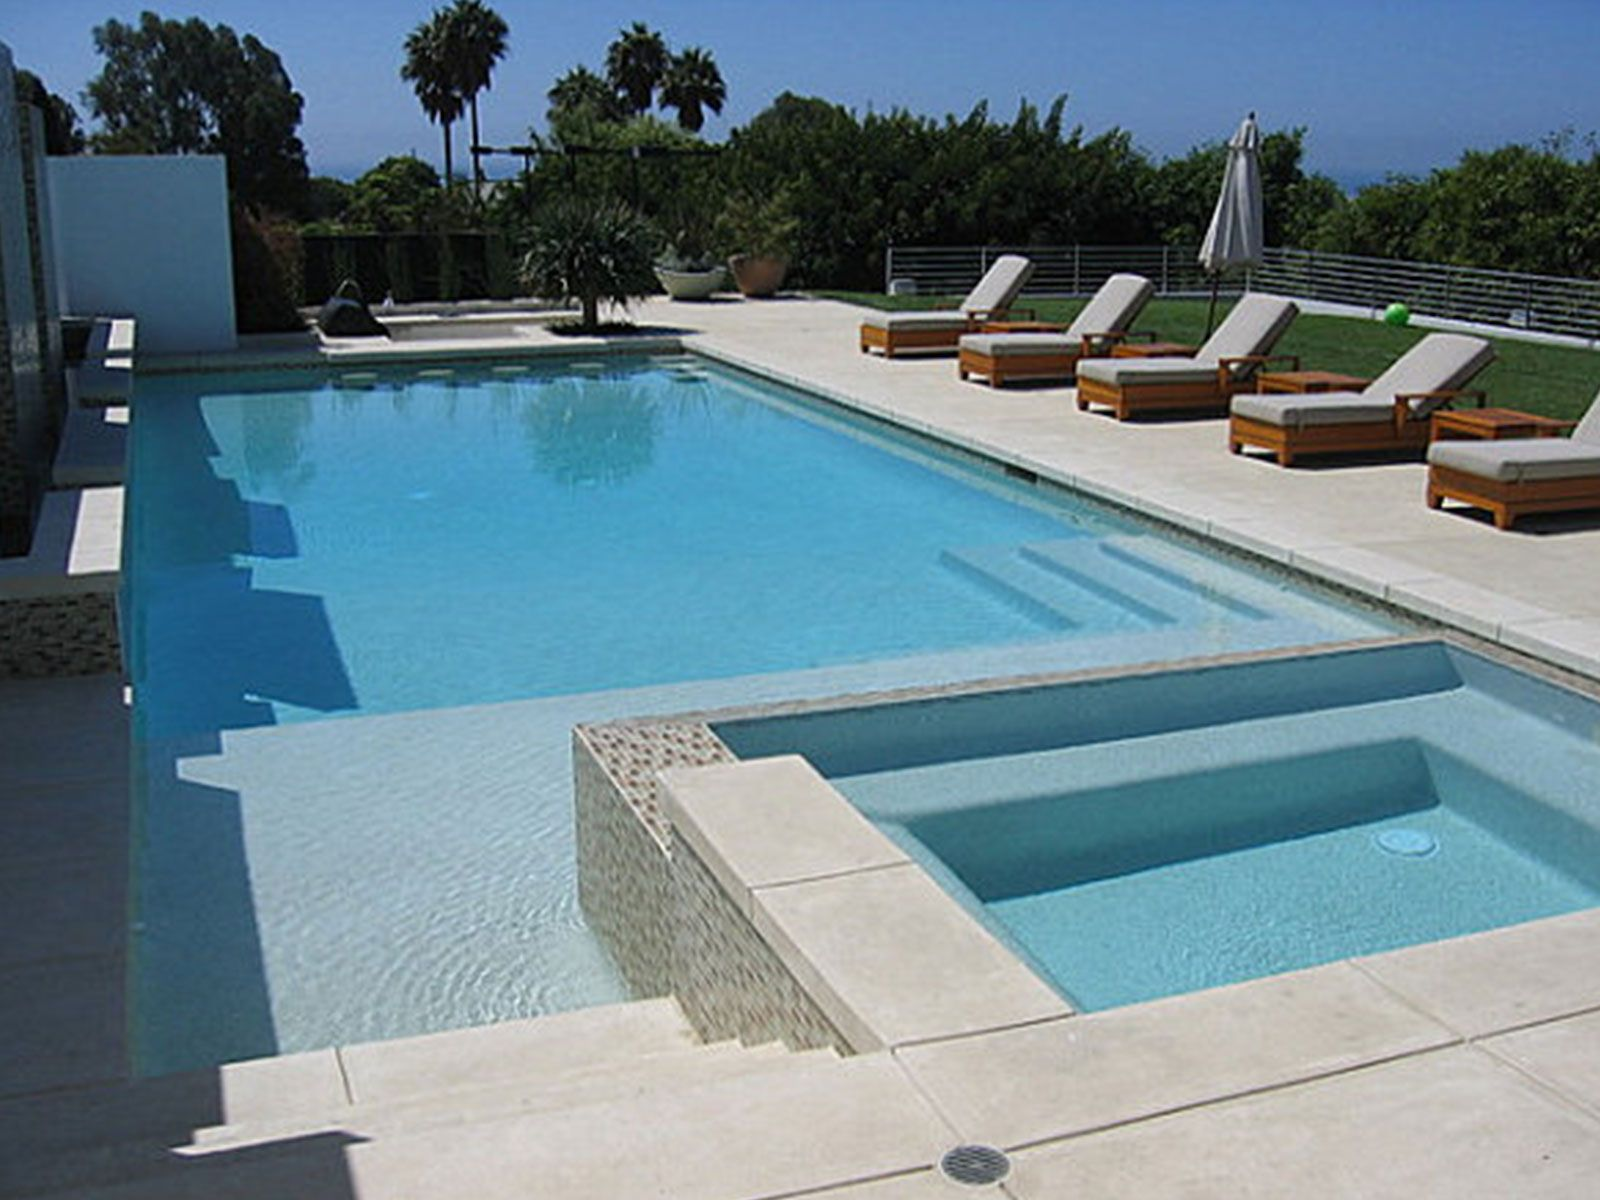 Simple swimming pool design image modern creative swimming modern swimming pools and spas pool - Design of swimming pool ...